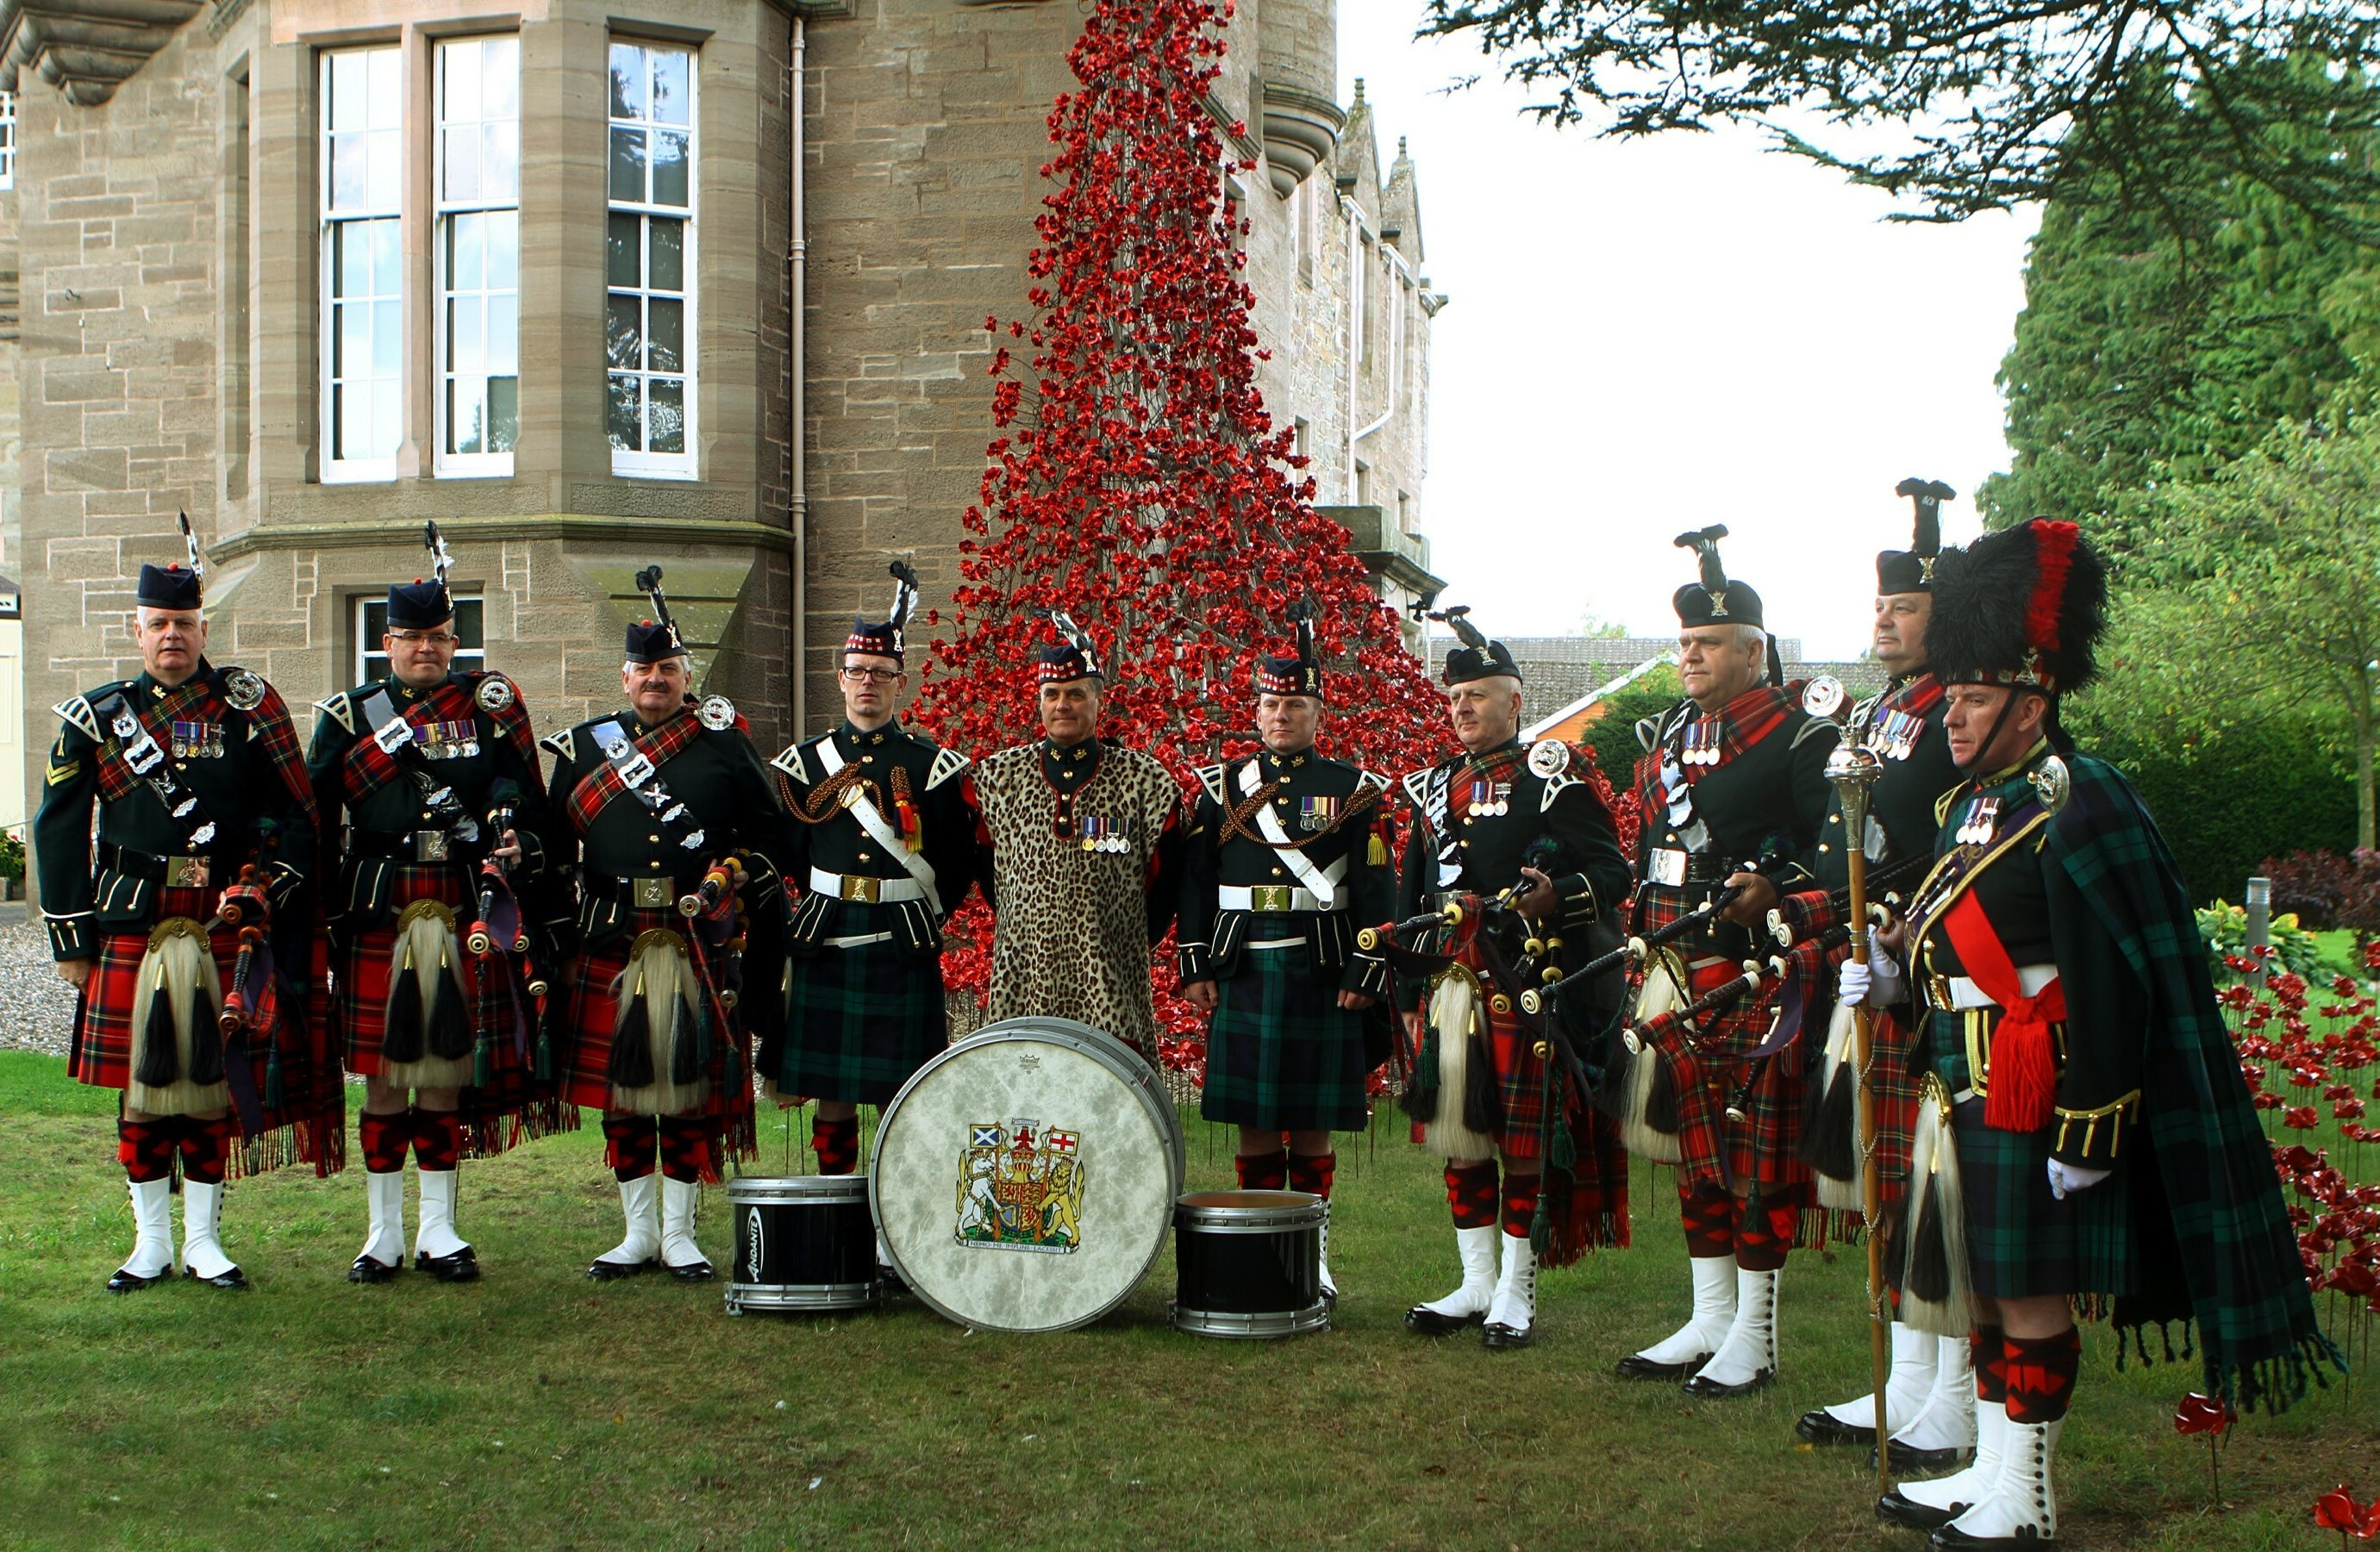 Drums of the 51st Highland, 7th Battalion Royal Regiment of Scotland, beside the poppies at The Black Watch Castle.